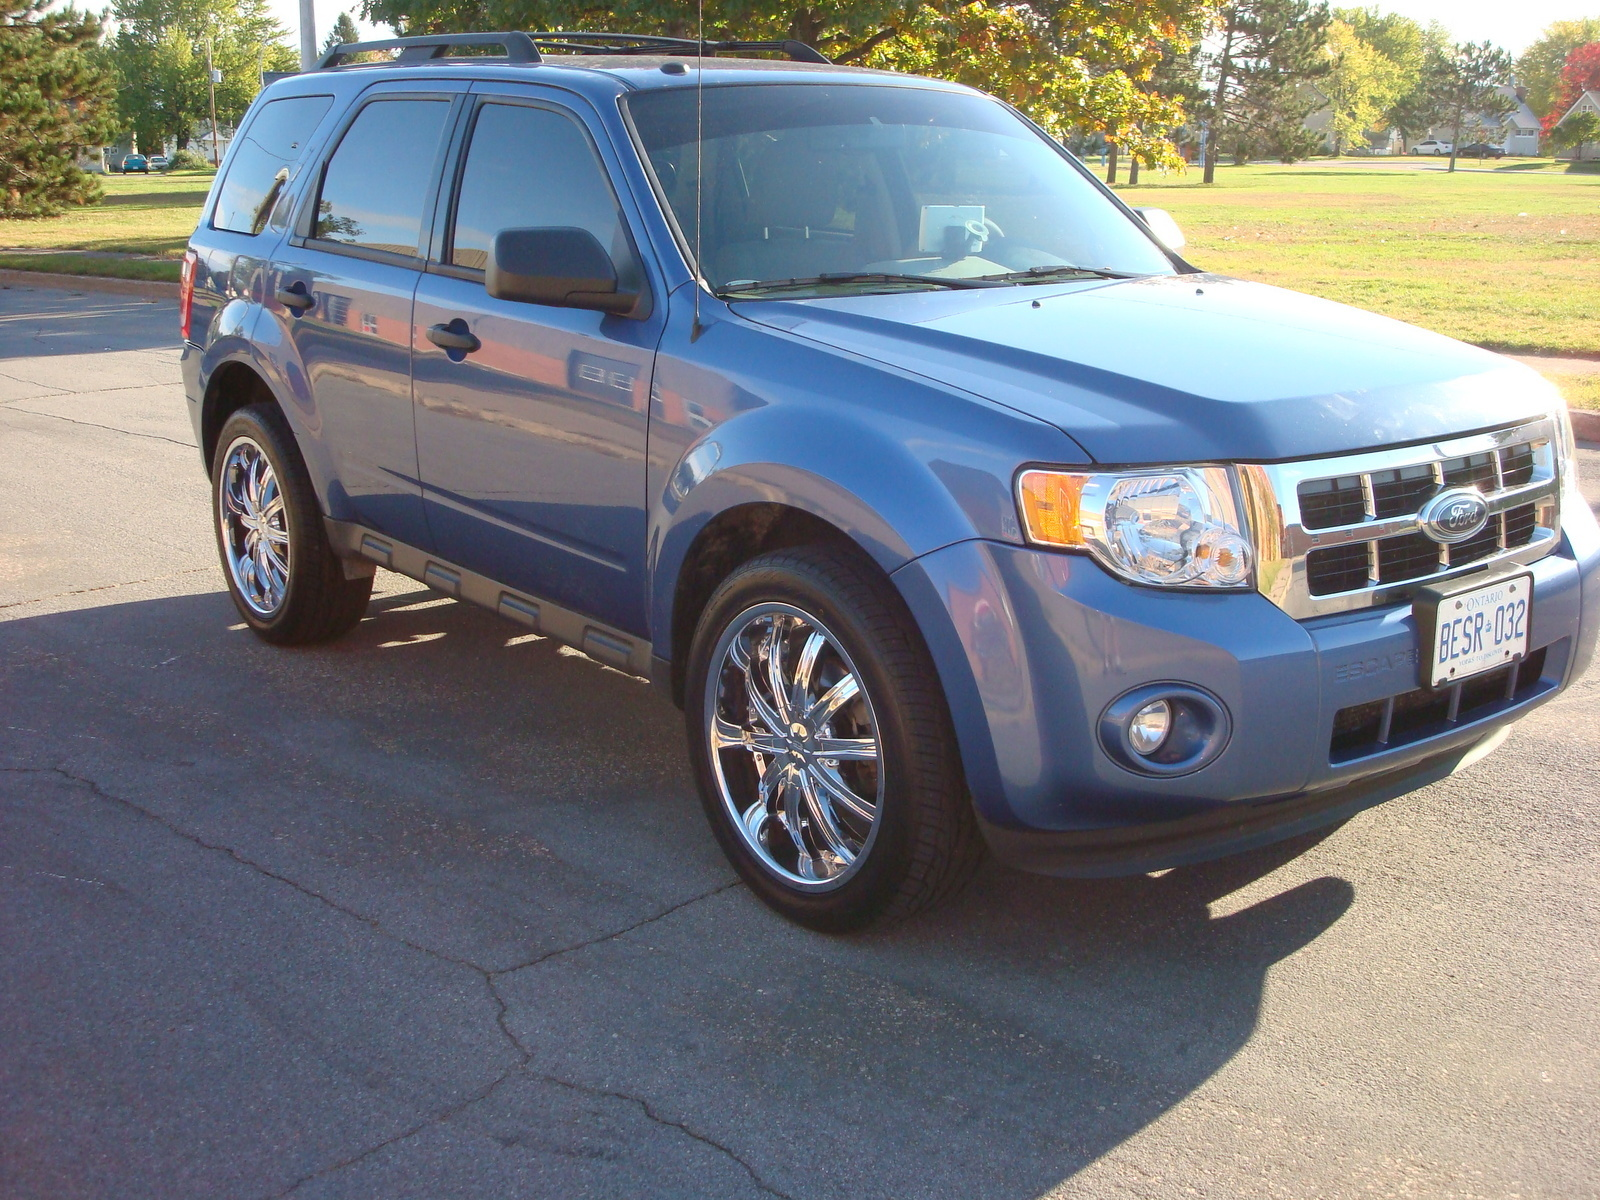 Ford Escape Questions Hello I m new here and I just bought a 2002